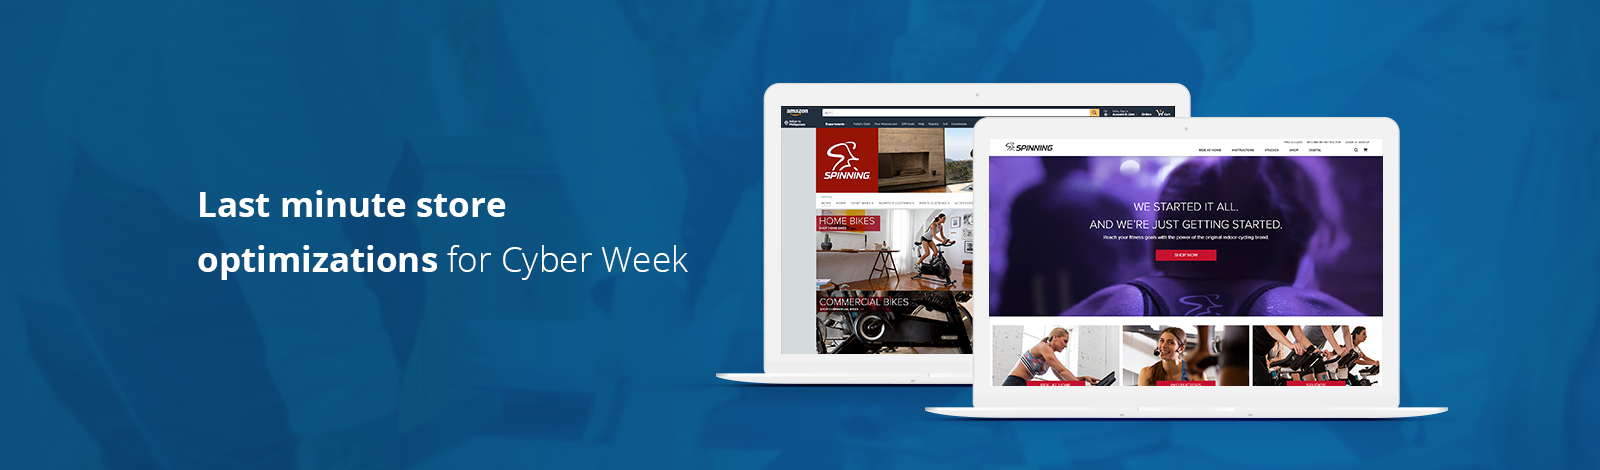 Last minute store optimizations for Cyber Week